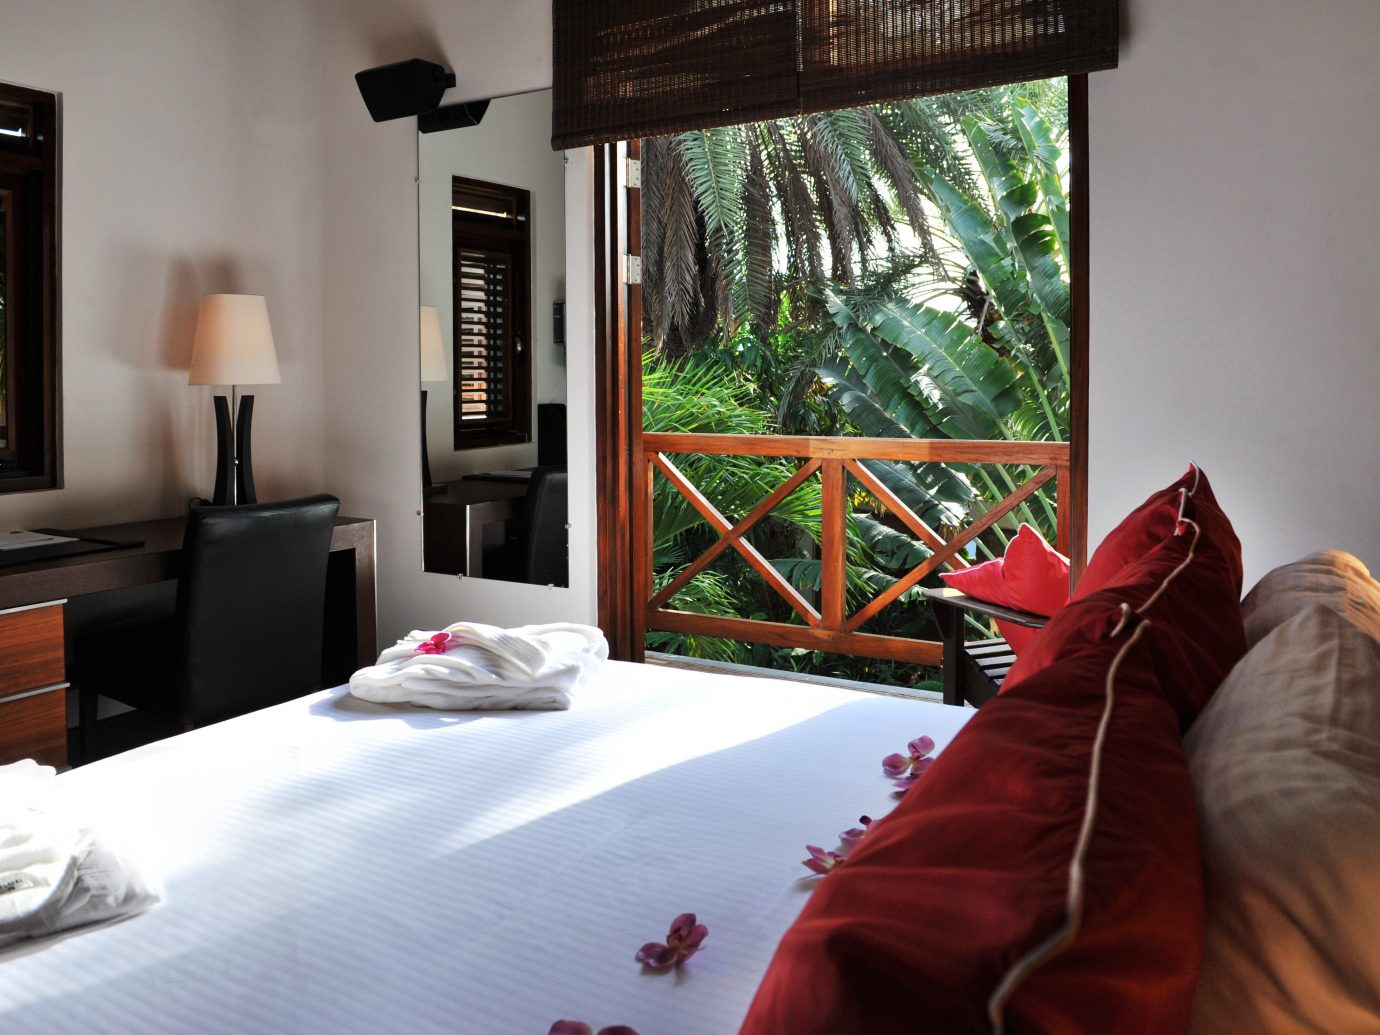 Bedroom Boutique Hotels Hip Hotels Lounge Luxury Modern Romantic Getaways Romantic Hotels Scenic views Suite Tropical indoor wall room property bed house home living room interior design cottage estate real estate Villa